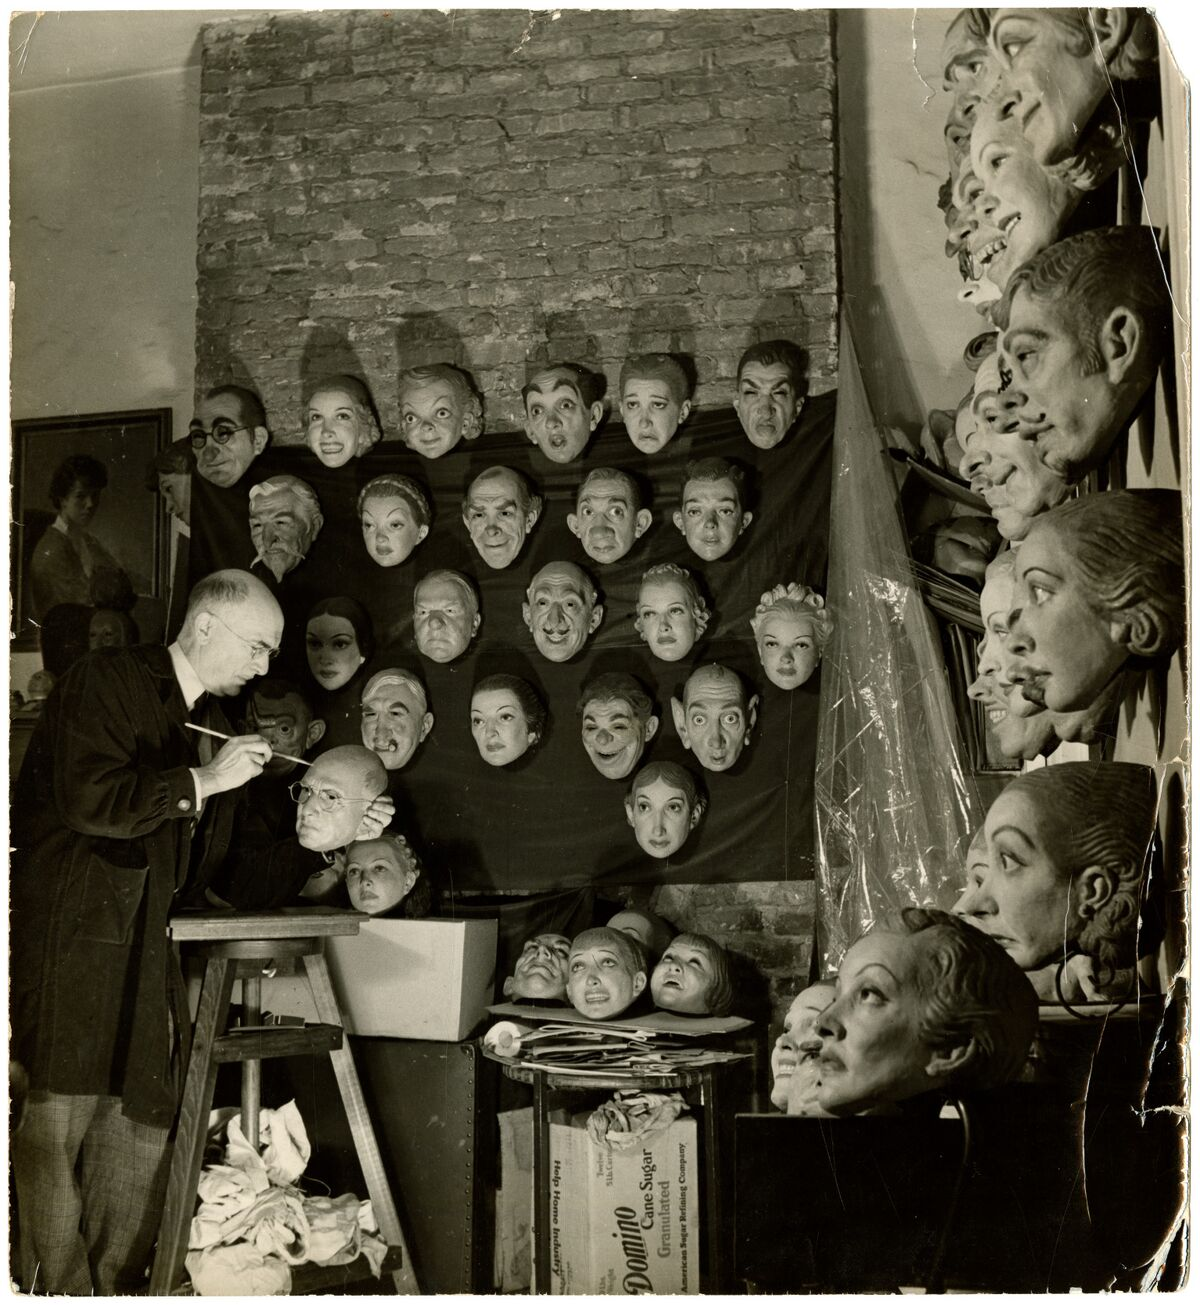 Doane Powell with wall of masks